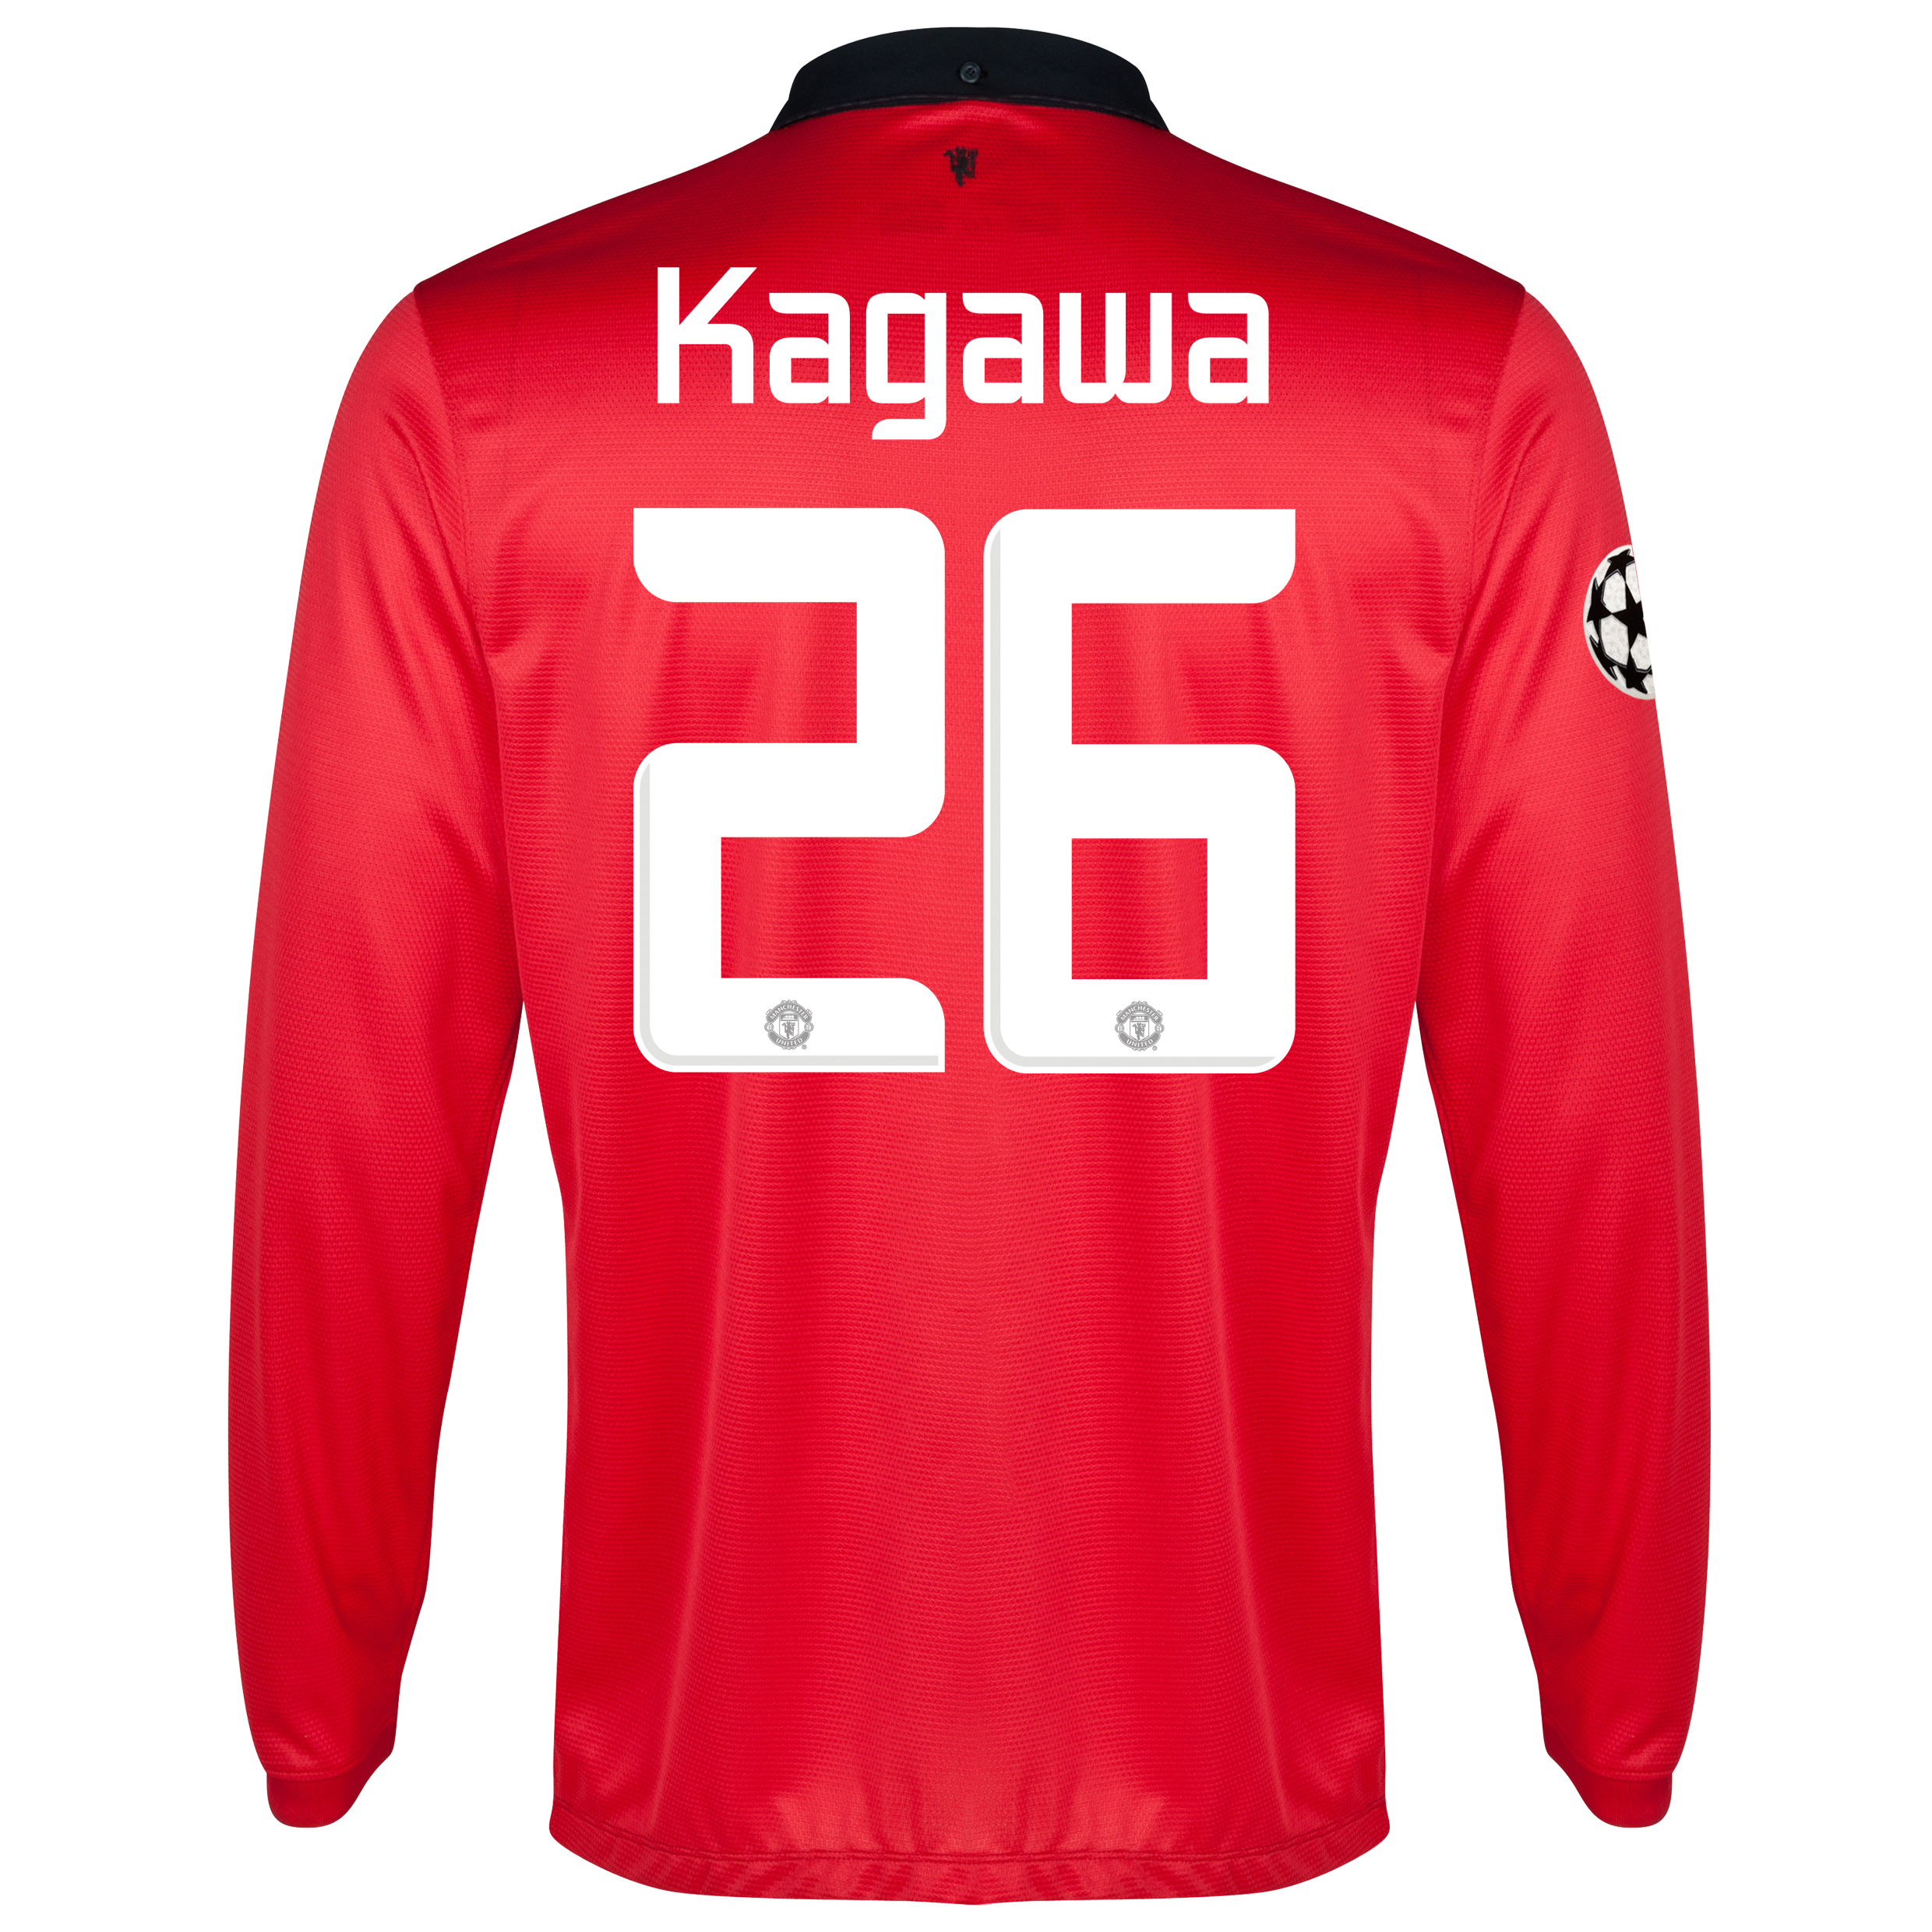 Manchester United UEFA Champions League Home Shirt 2013/14 - Long Sleeved - Kids with Kagawa 26 printing